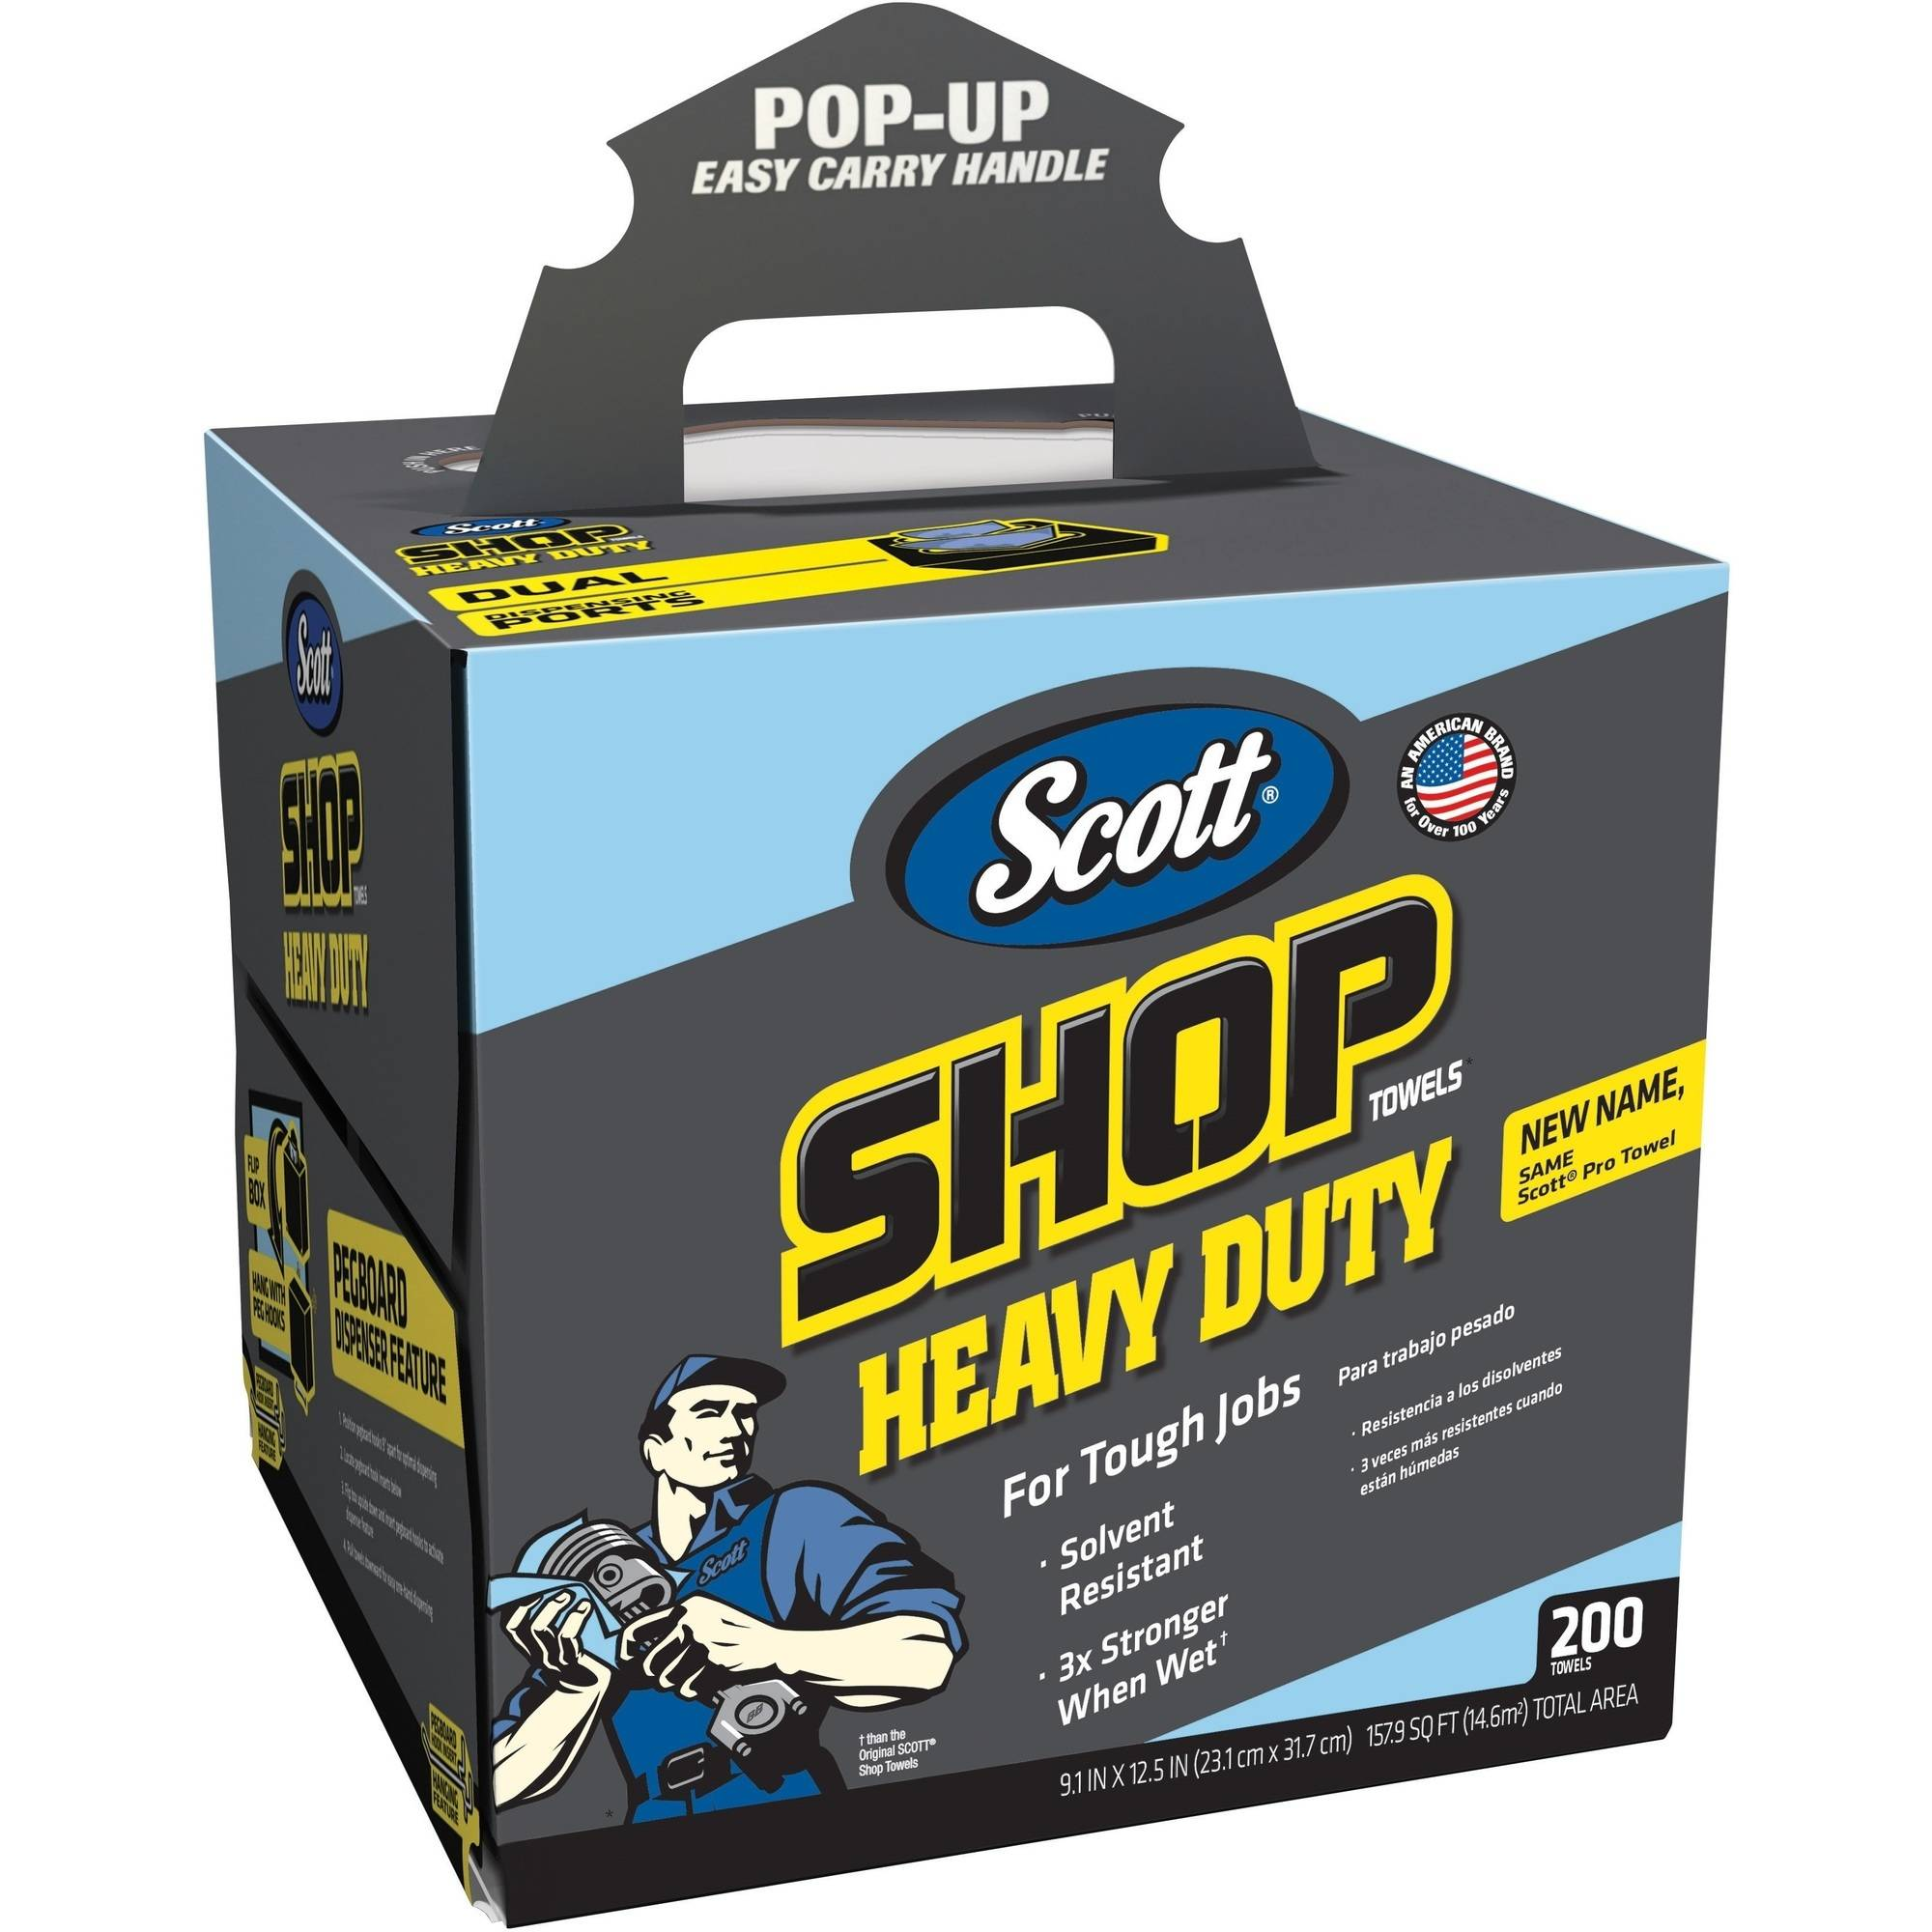 Scott Heavy Duty Towel Box